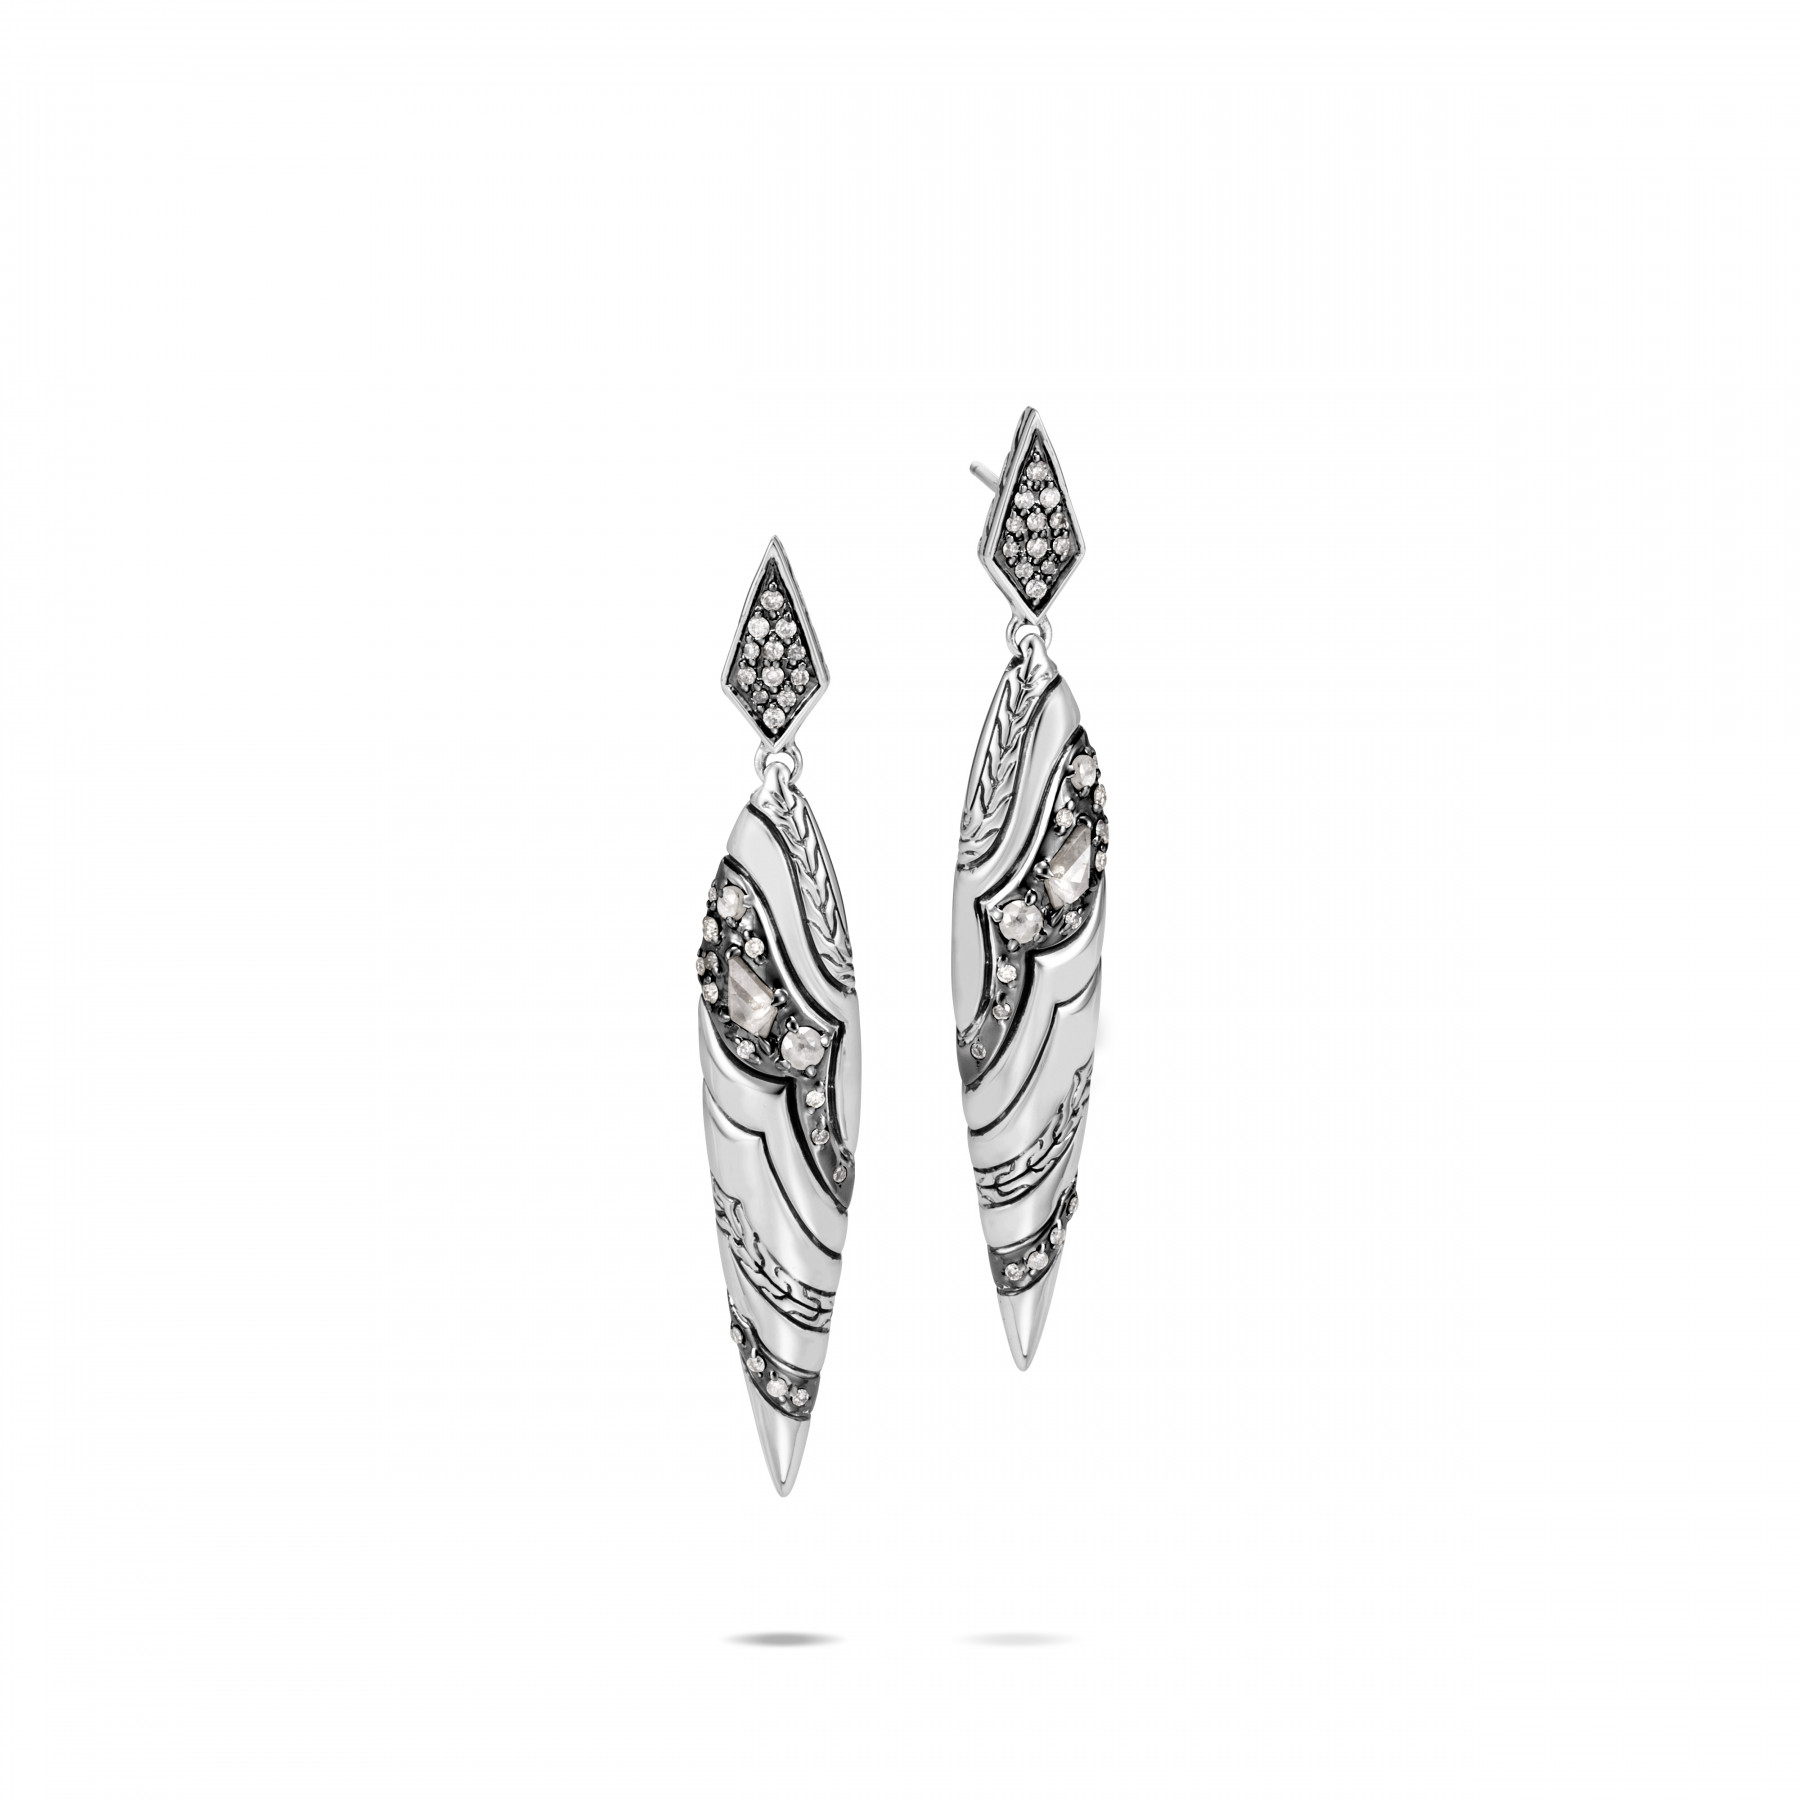 John Hardy Lahar White and Grey Diamond Spear Earrings front view